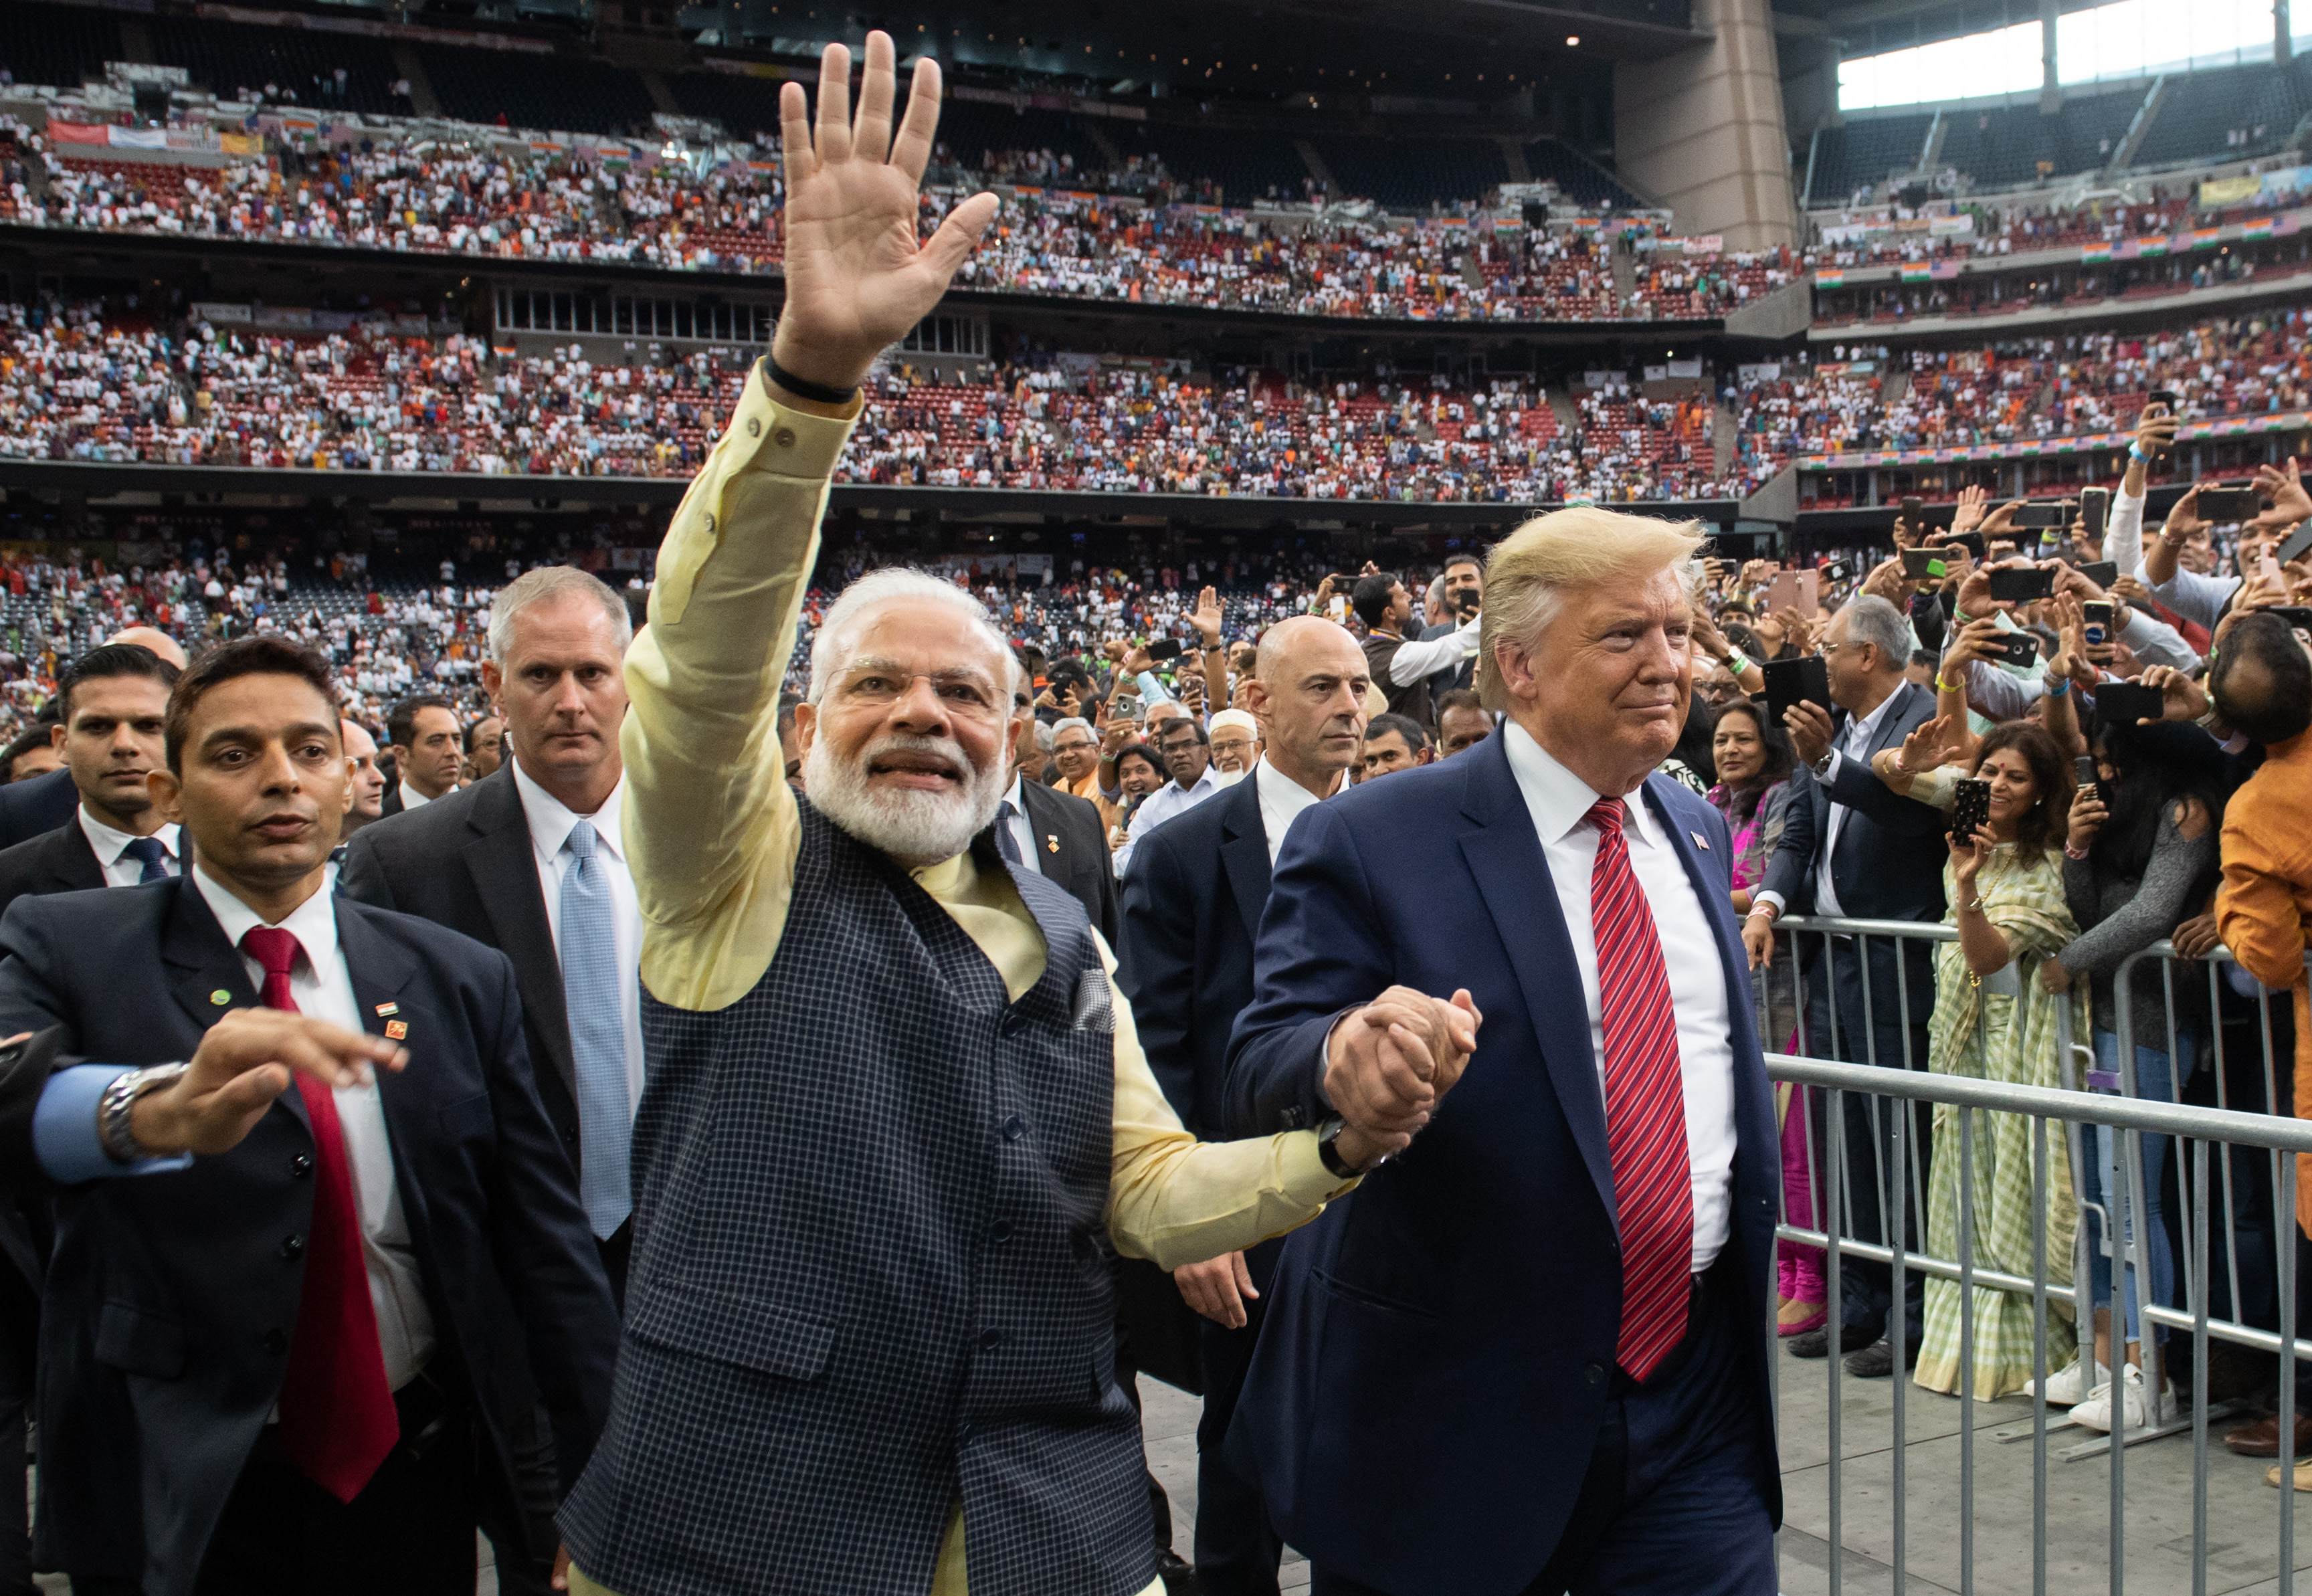 In India, Trump aims for crowds and strategic friendship